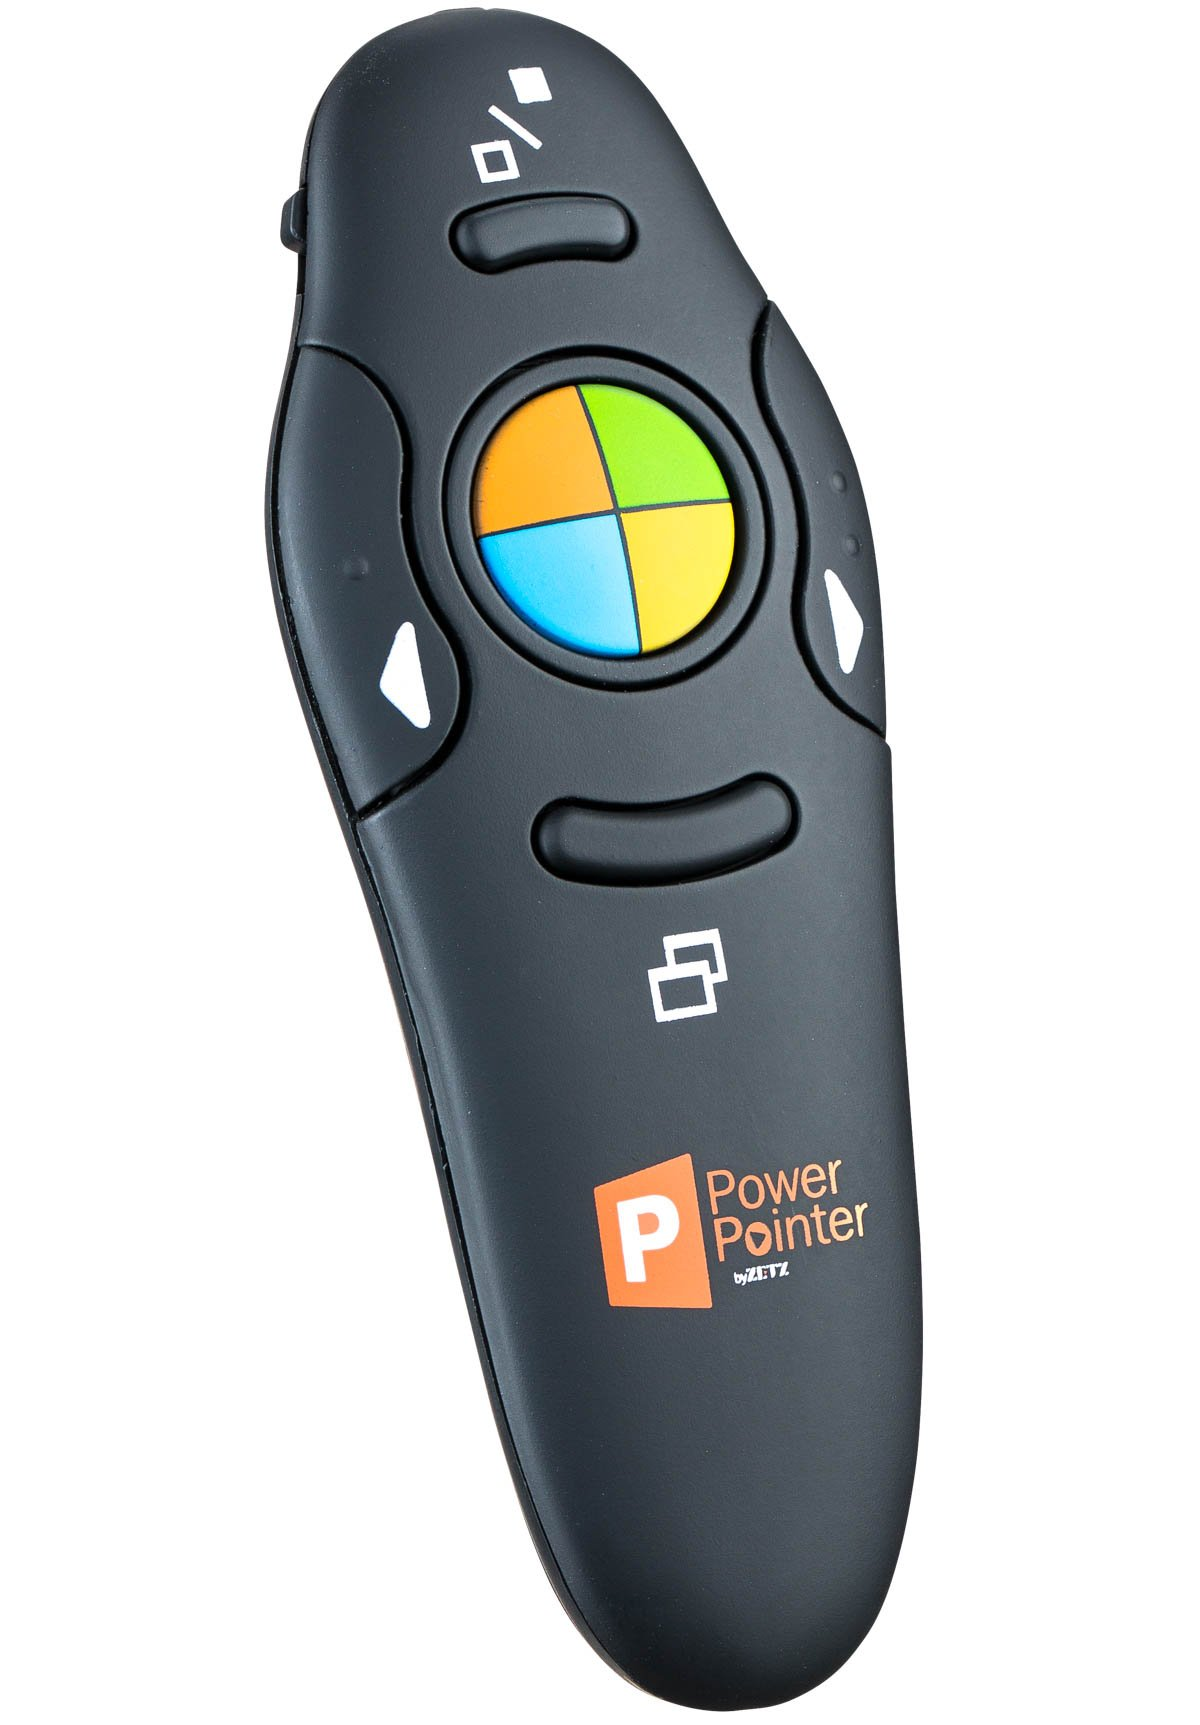 ZETZ Wireless Presenter Remote Control With USB & Laser Pointer | Powerful & Ergonomic PPT Clicker Easy To Use | For Microsoft Power Point Presentations, Excel & Interaction With Crowd